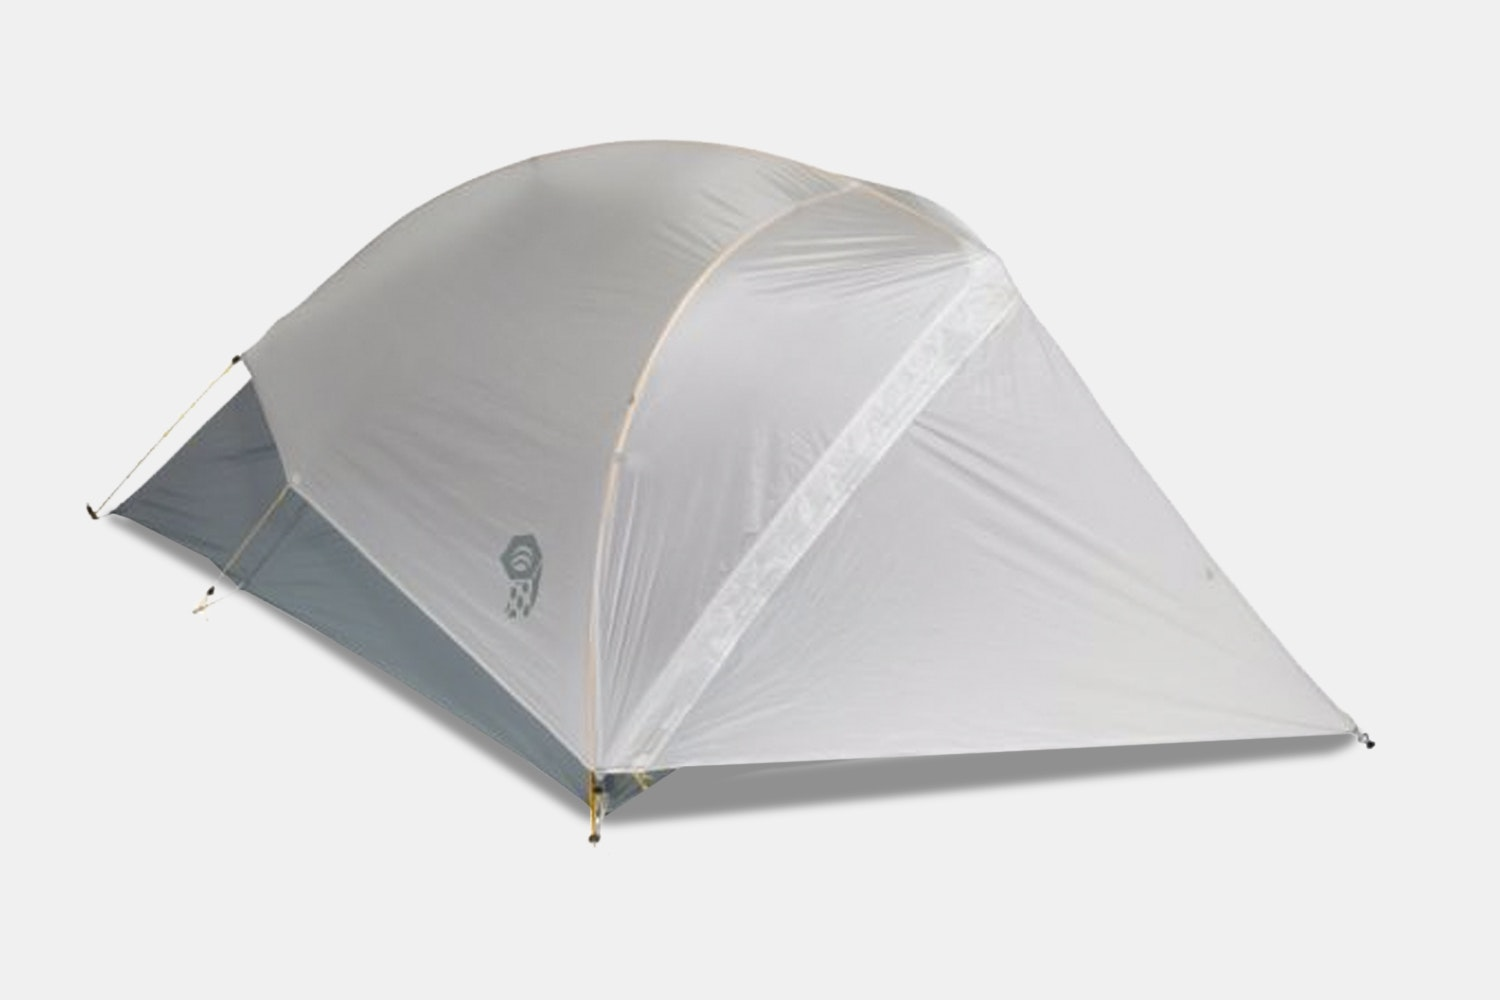 Mountain Hardwear Ghost UL Tents